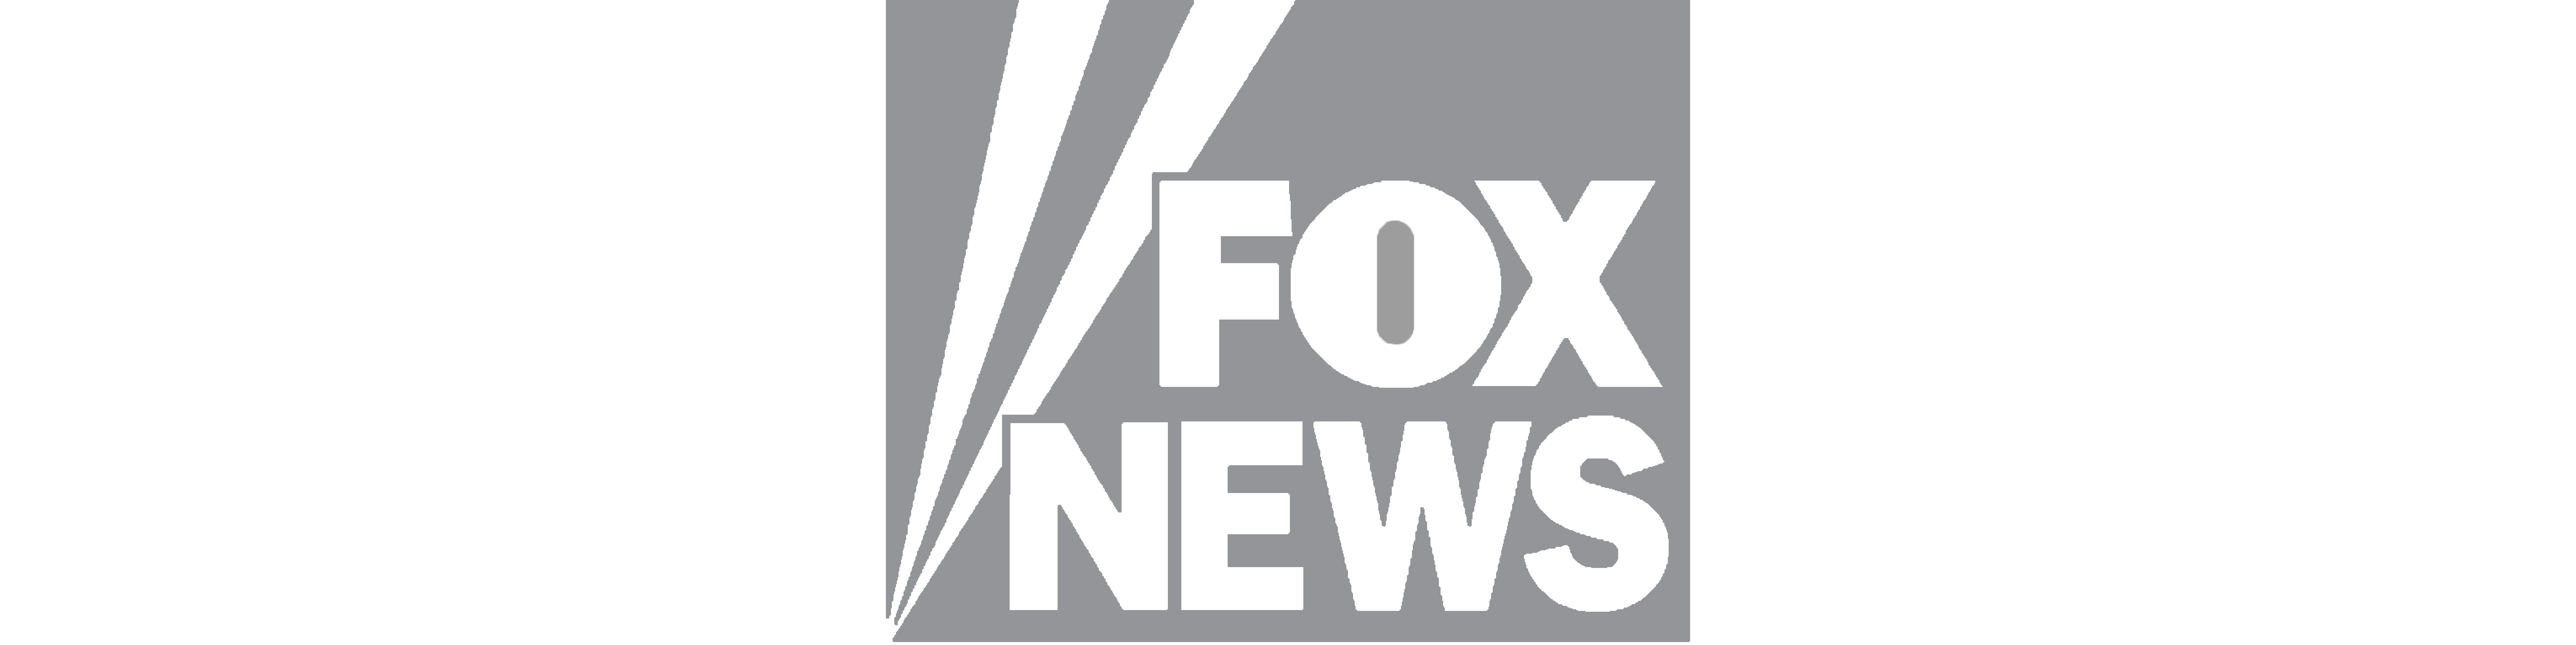 Fox News Logo - Fox News Png Logo - Free Transparent PNG Logos